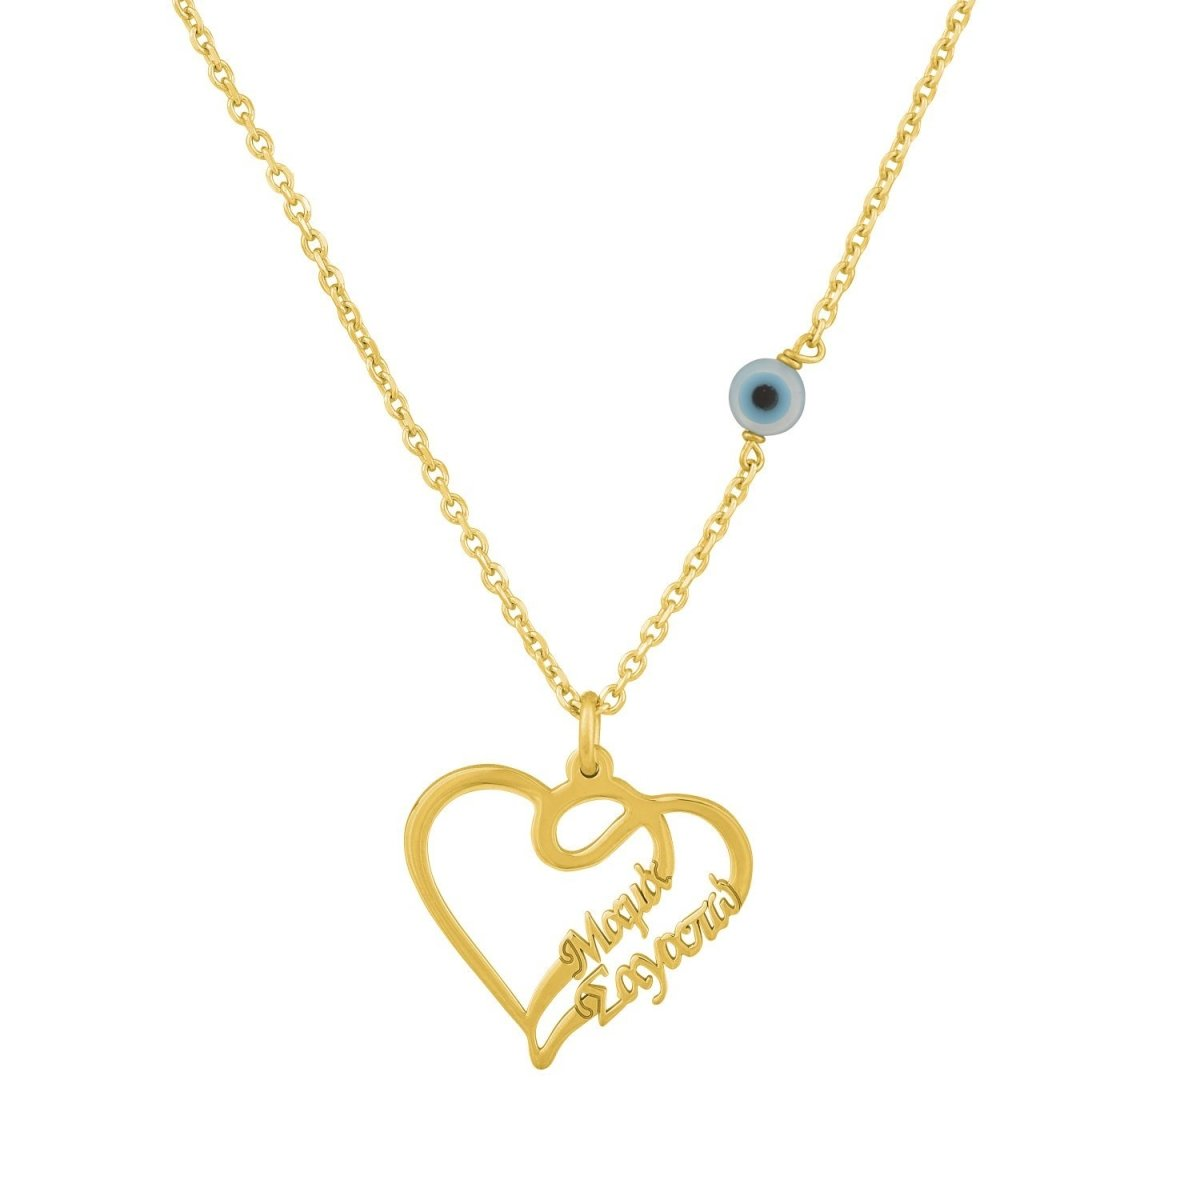 GM425G Necklace I Love You Made Of Gold Plated Silver - Goldy Jewelry Store